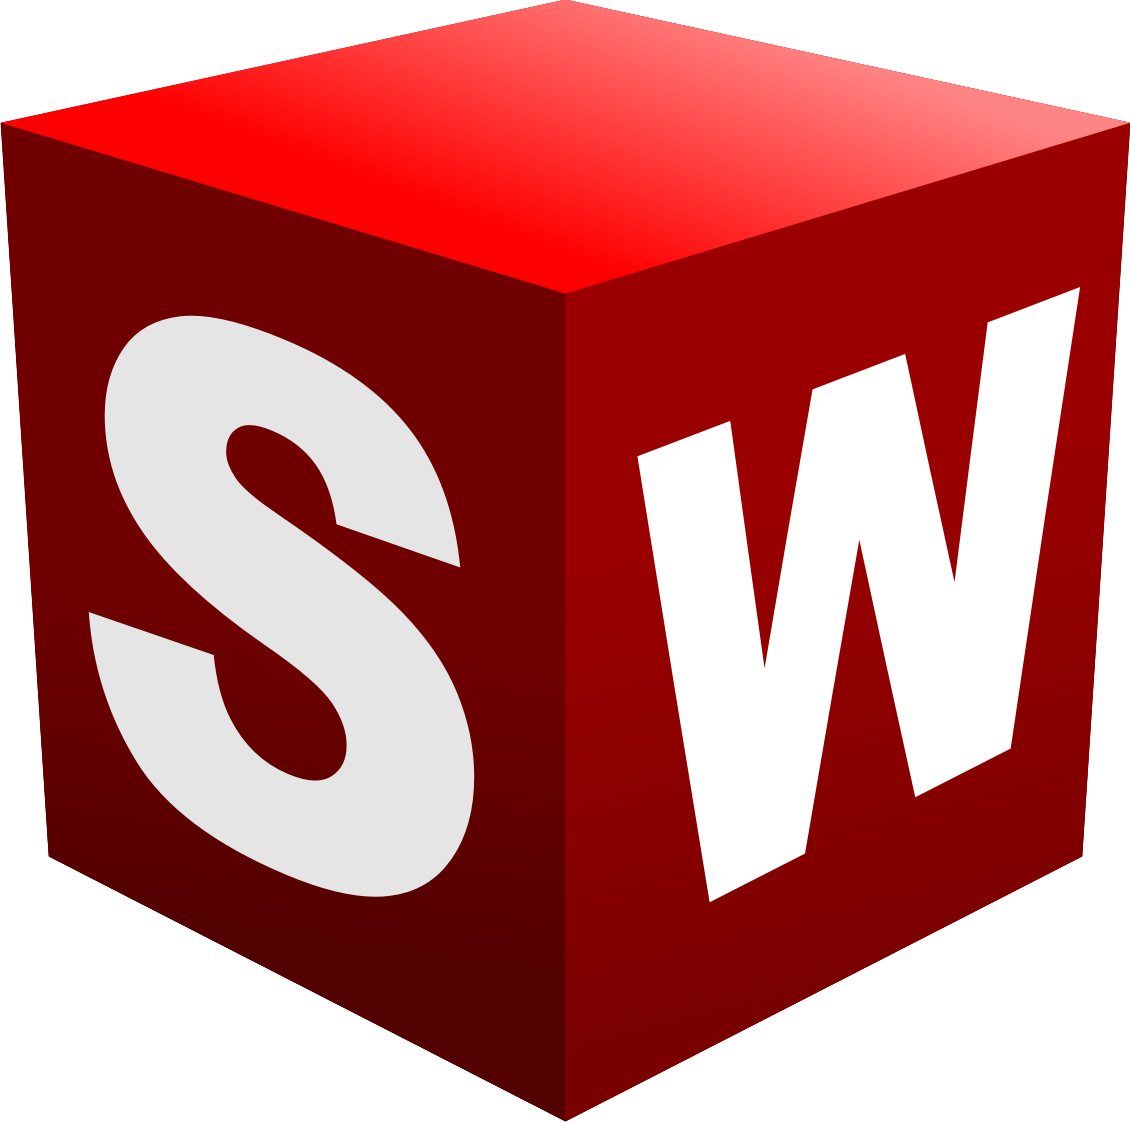 Solidworks 2015 SP4.0 ISO For Mac x64 Premium Download ...